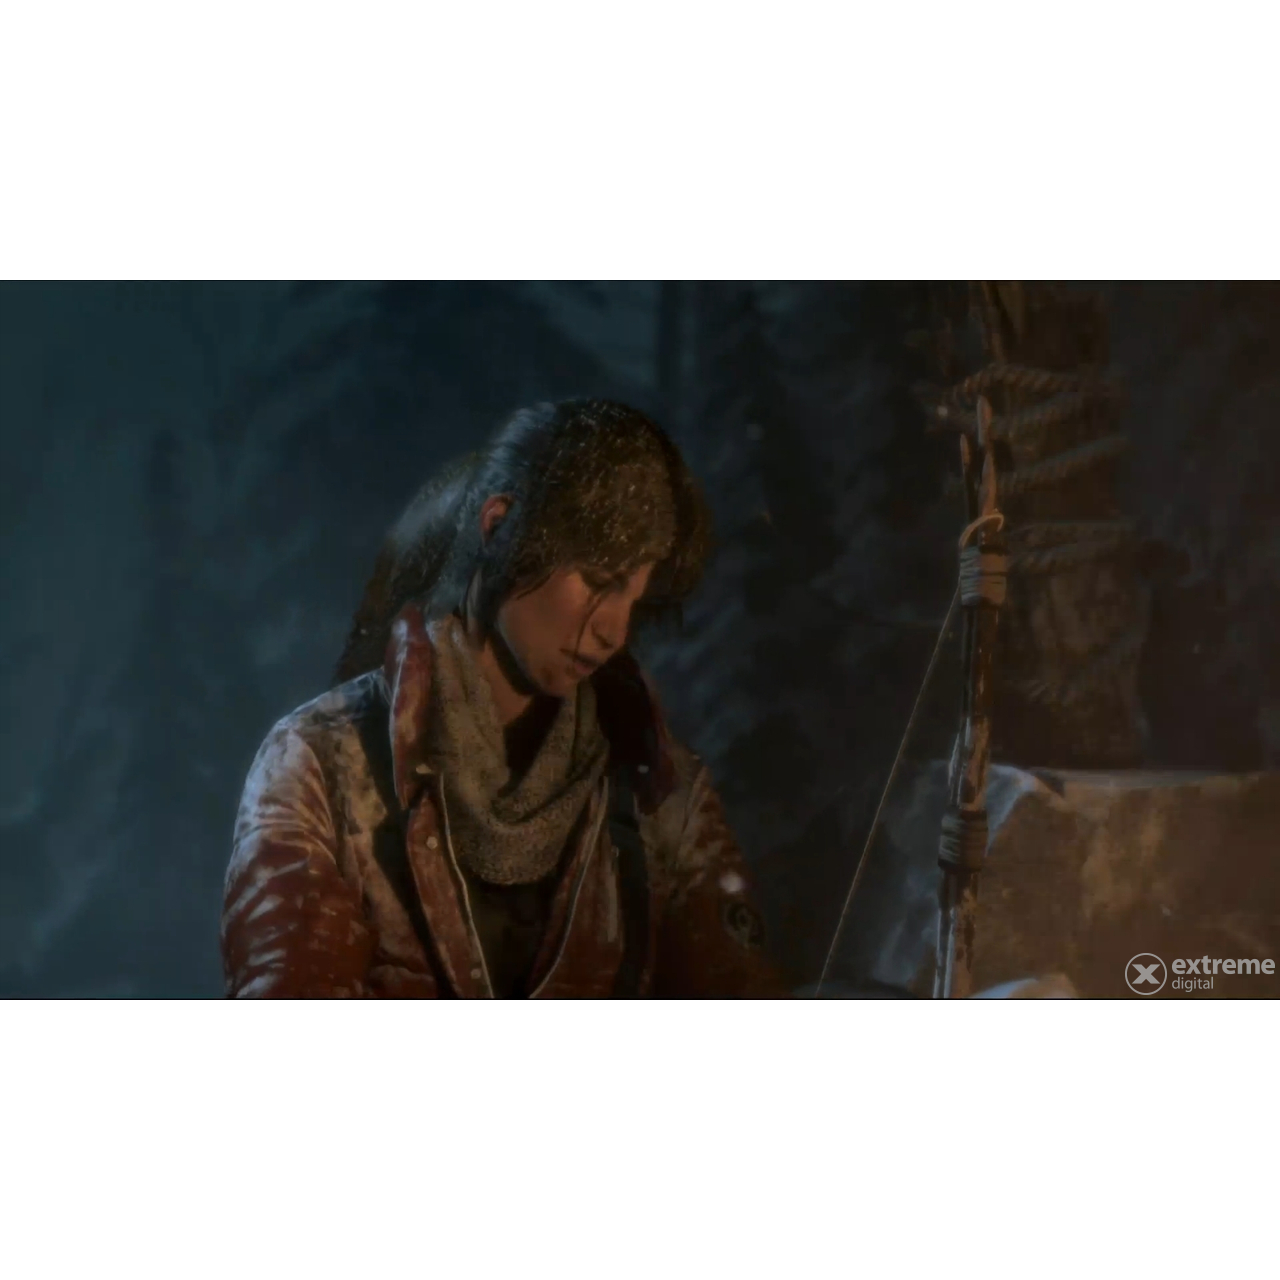 rise-of-the-tomb-raider-xbox-one-jatekszoftver_258b958c.jpg